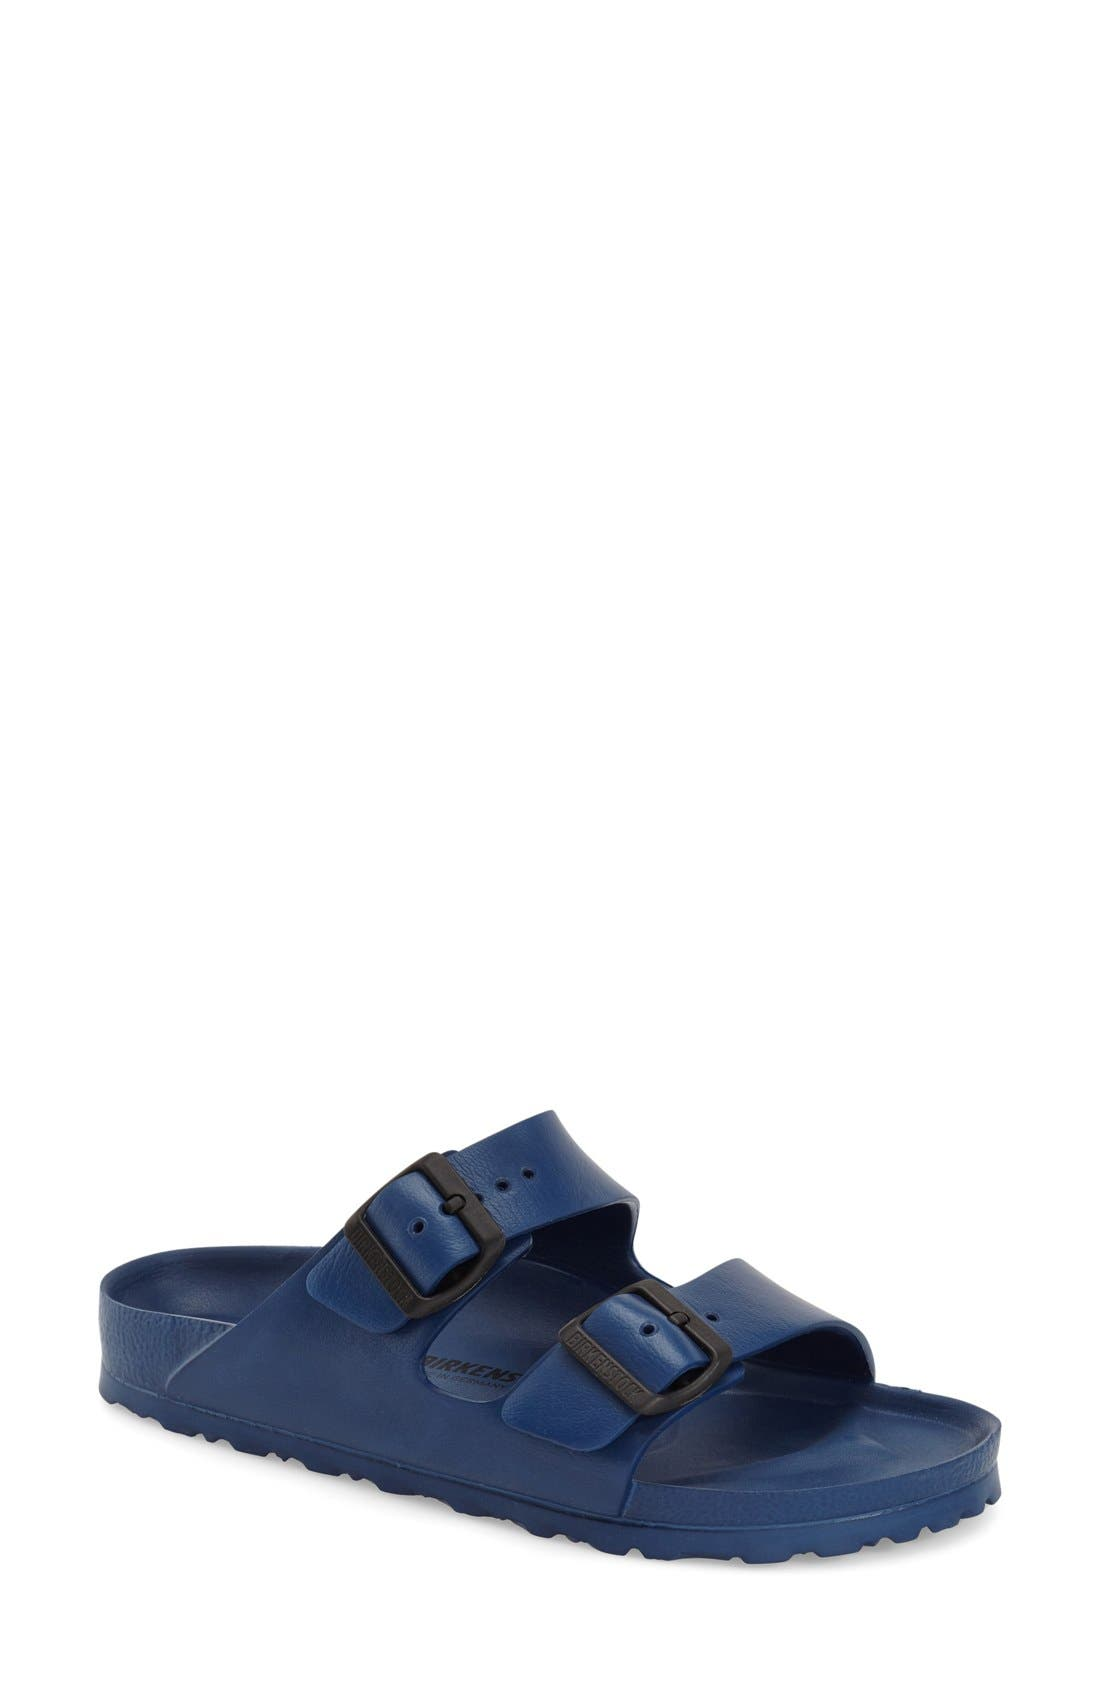 Birkenstock Essentials - Arizona Slide Sandal (Women)